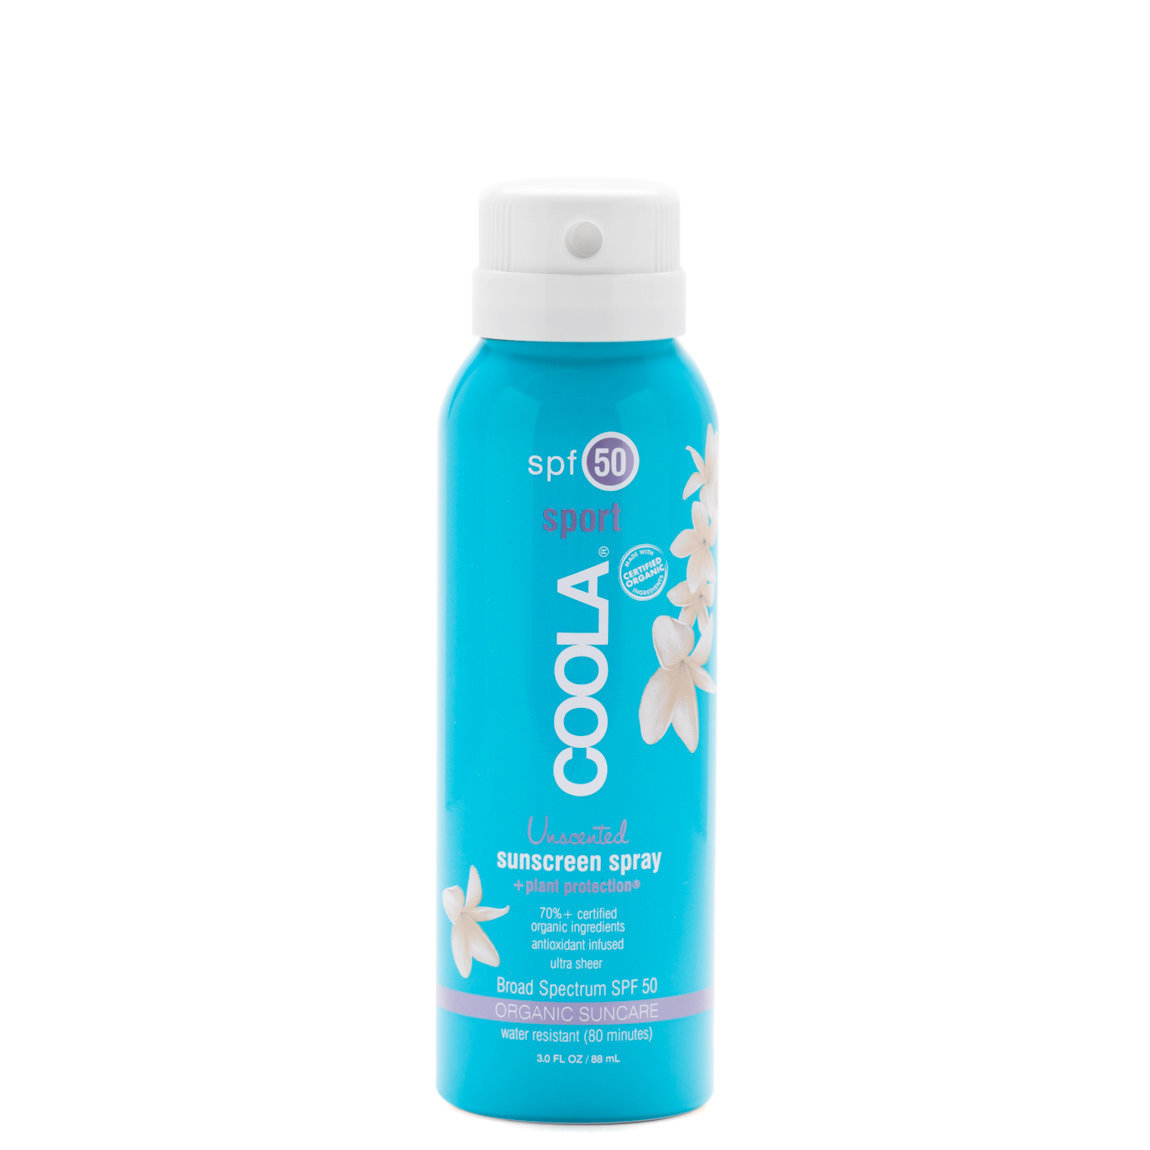 COOLA Travel Sport Sunscreen Spray SPF 50 Unscented product swatch.